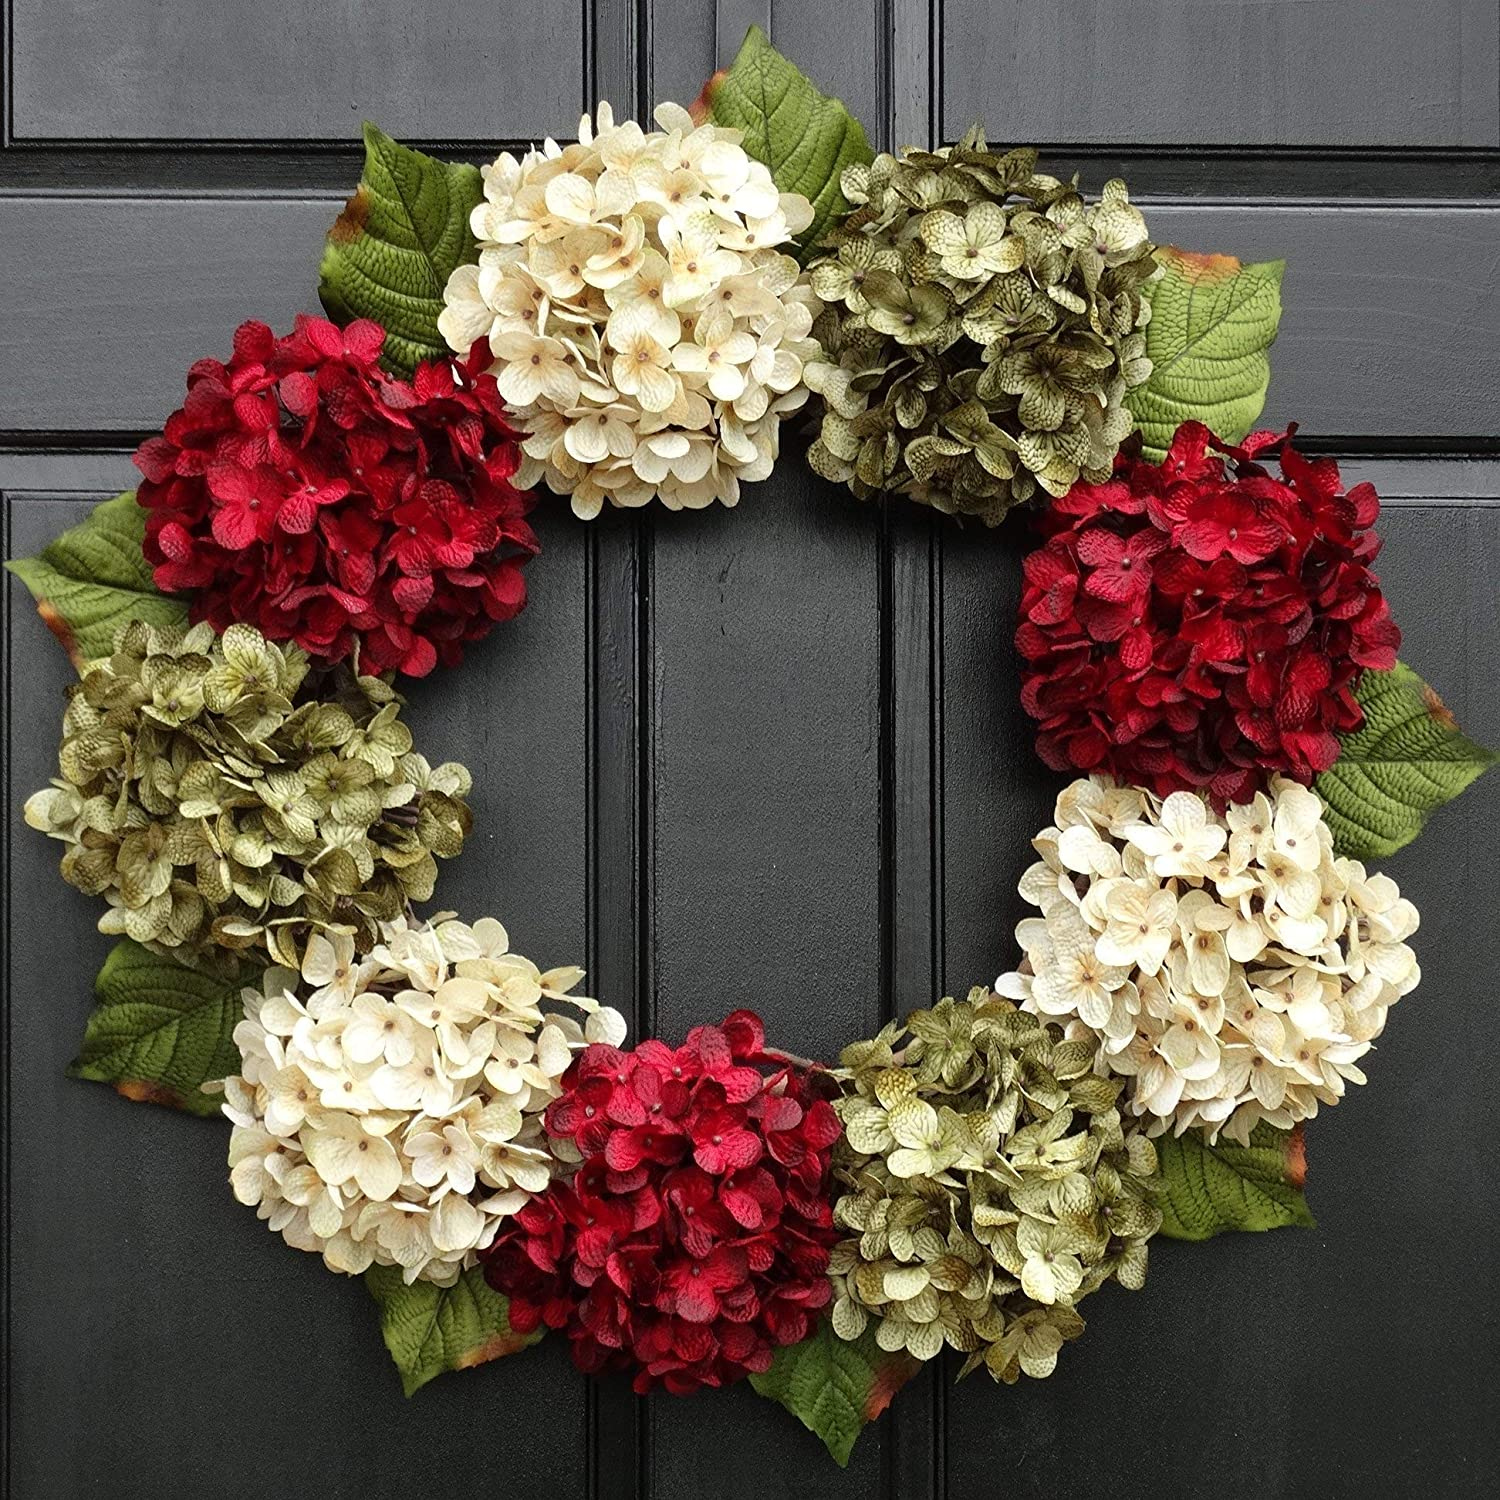 Amazon Com Artificial Hydrangea Christmas Wreath For Holiday Front